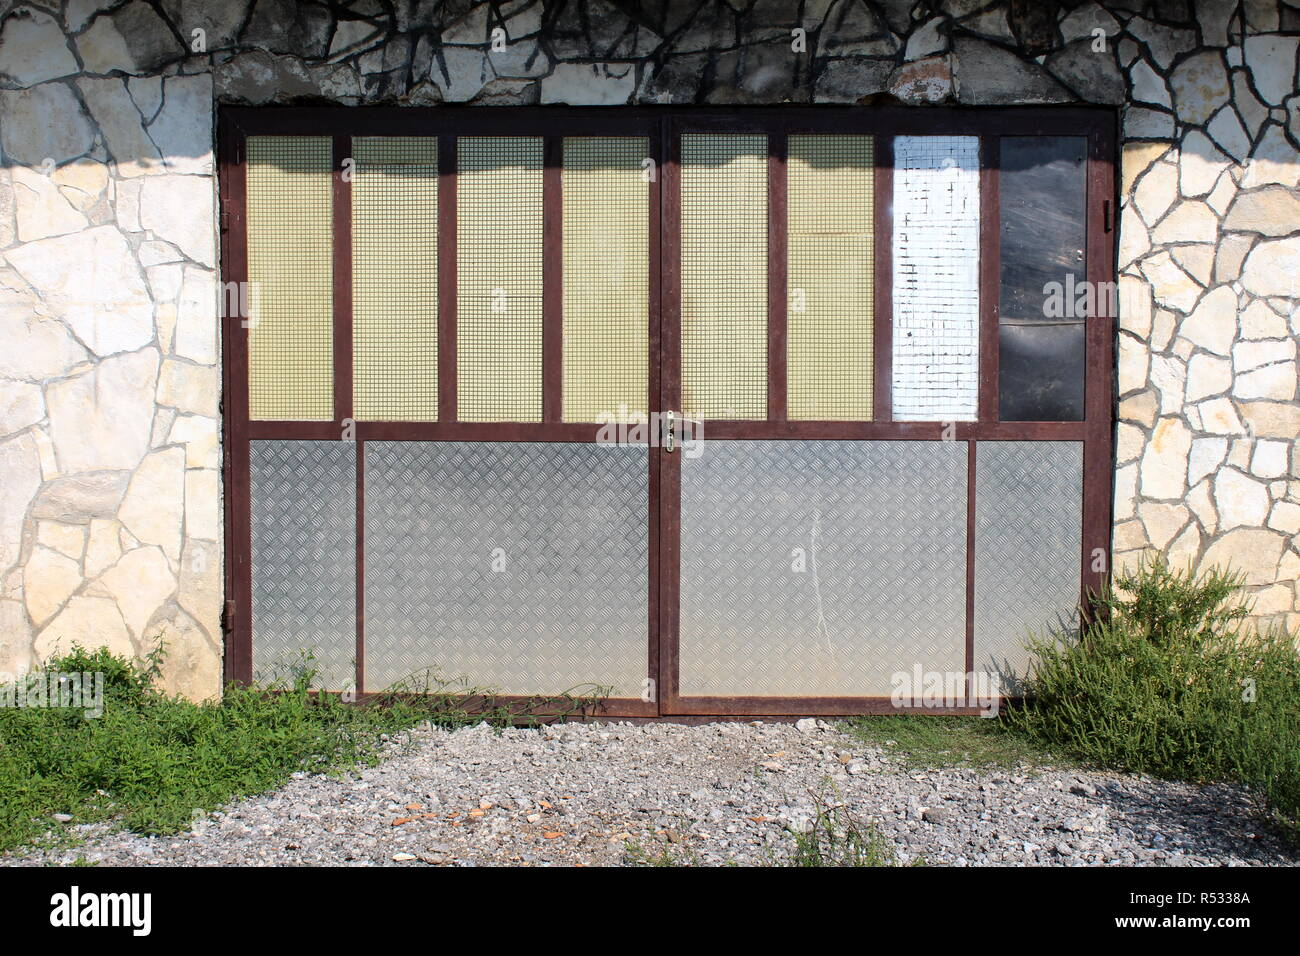 Homemade garage doors with strong metal frame, large sheet metal fillings and missing glass mounted on stone wall with gravel and uncut grass in front - Stock Image